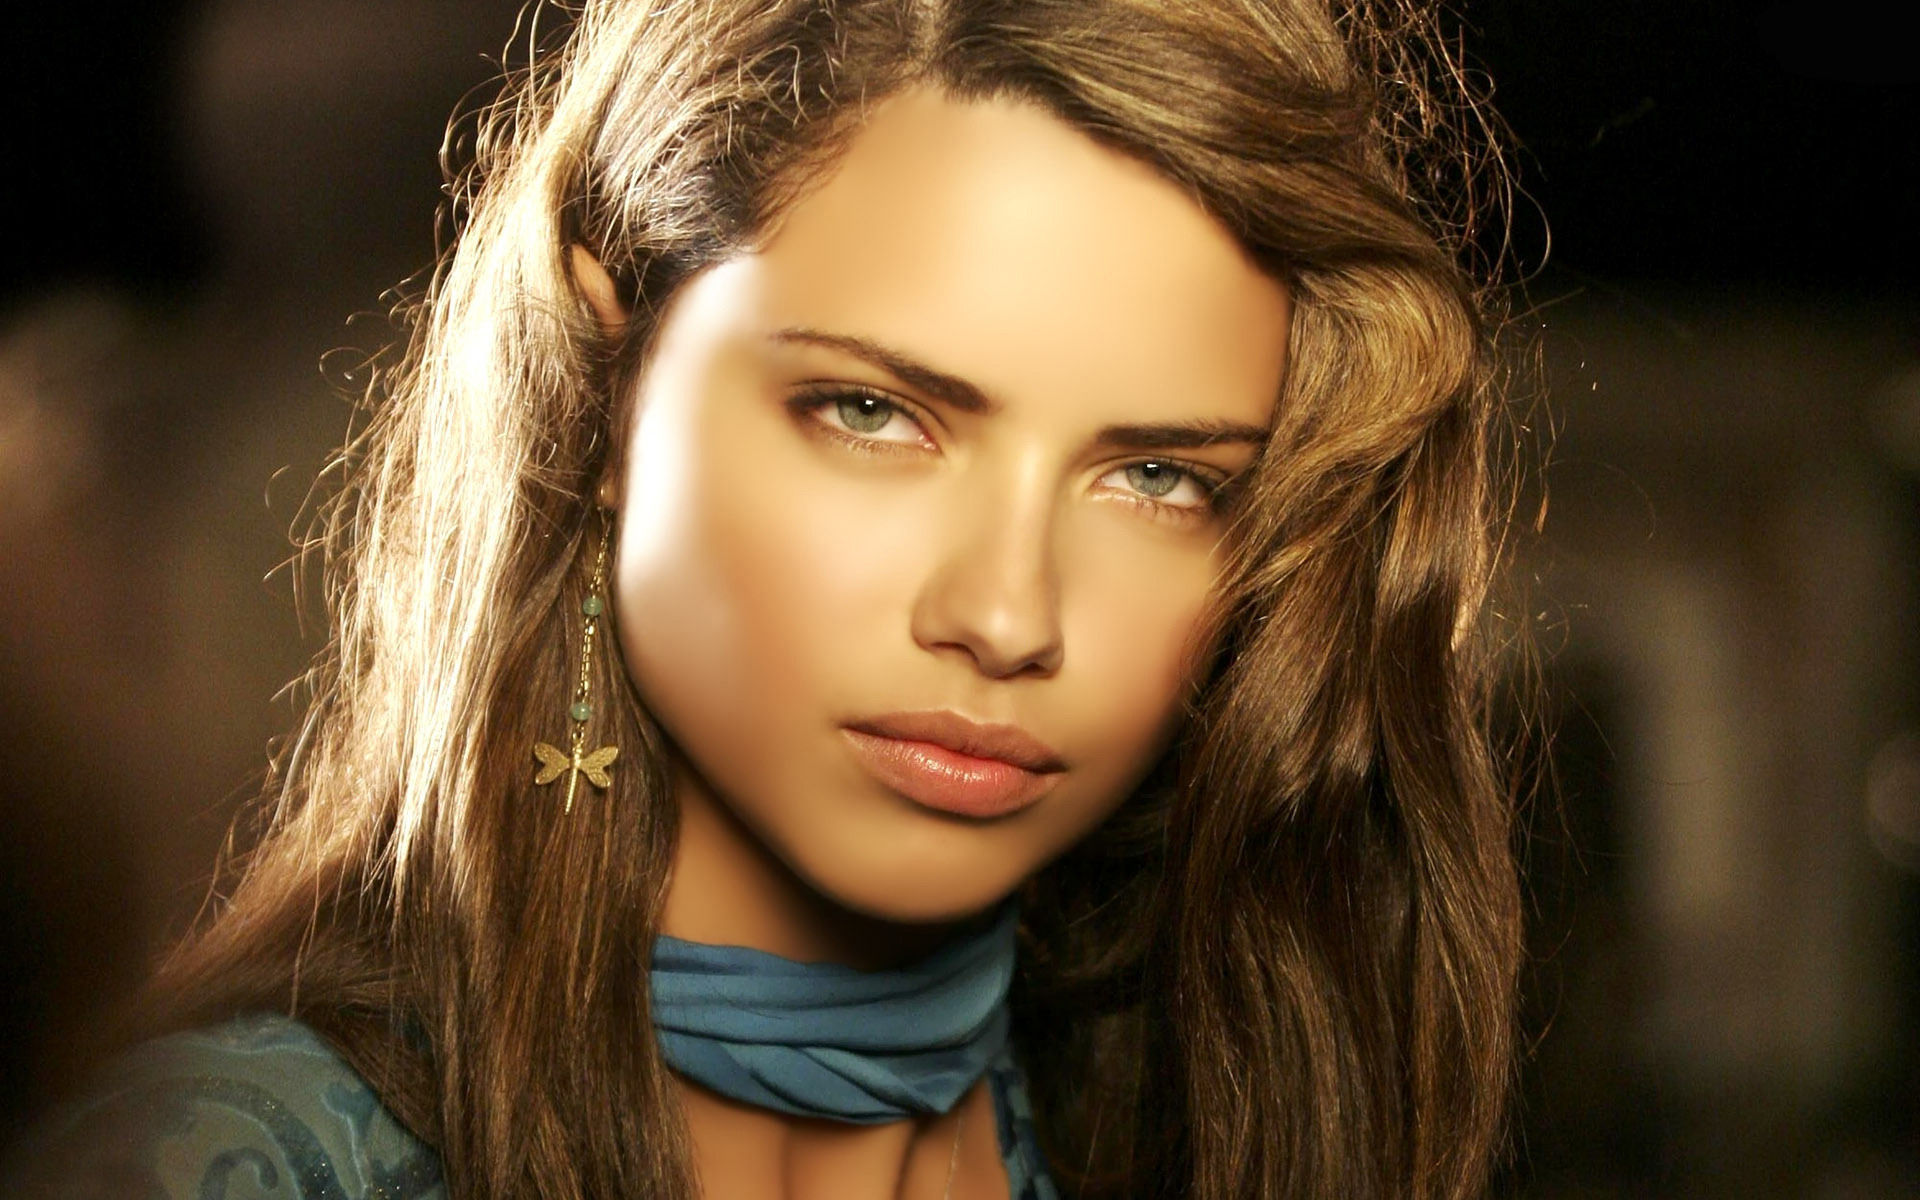 adriana lima photos - photo #3